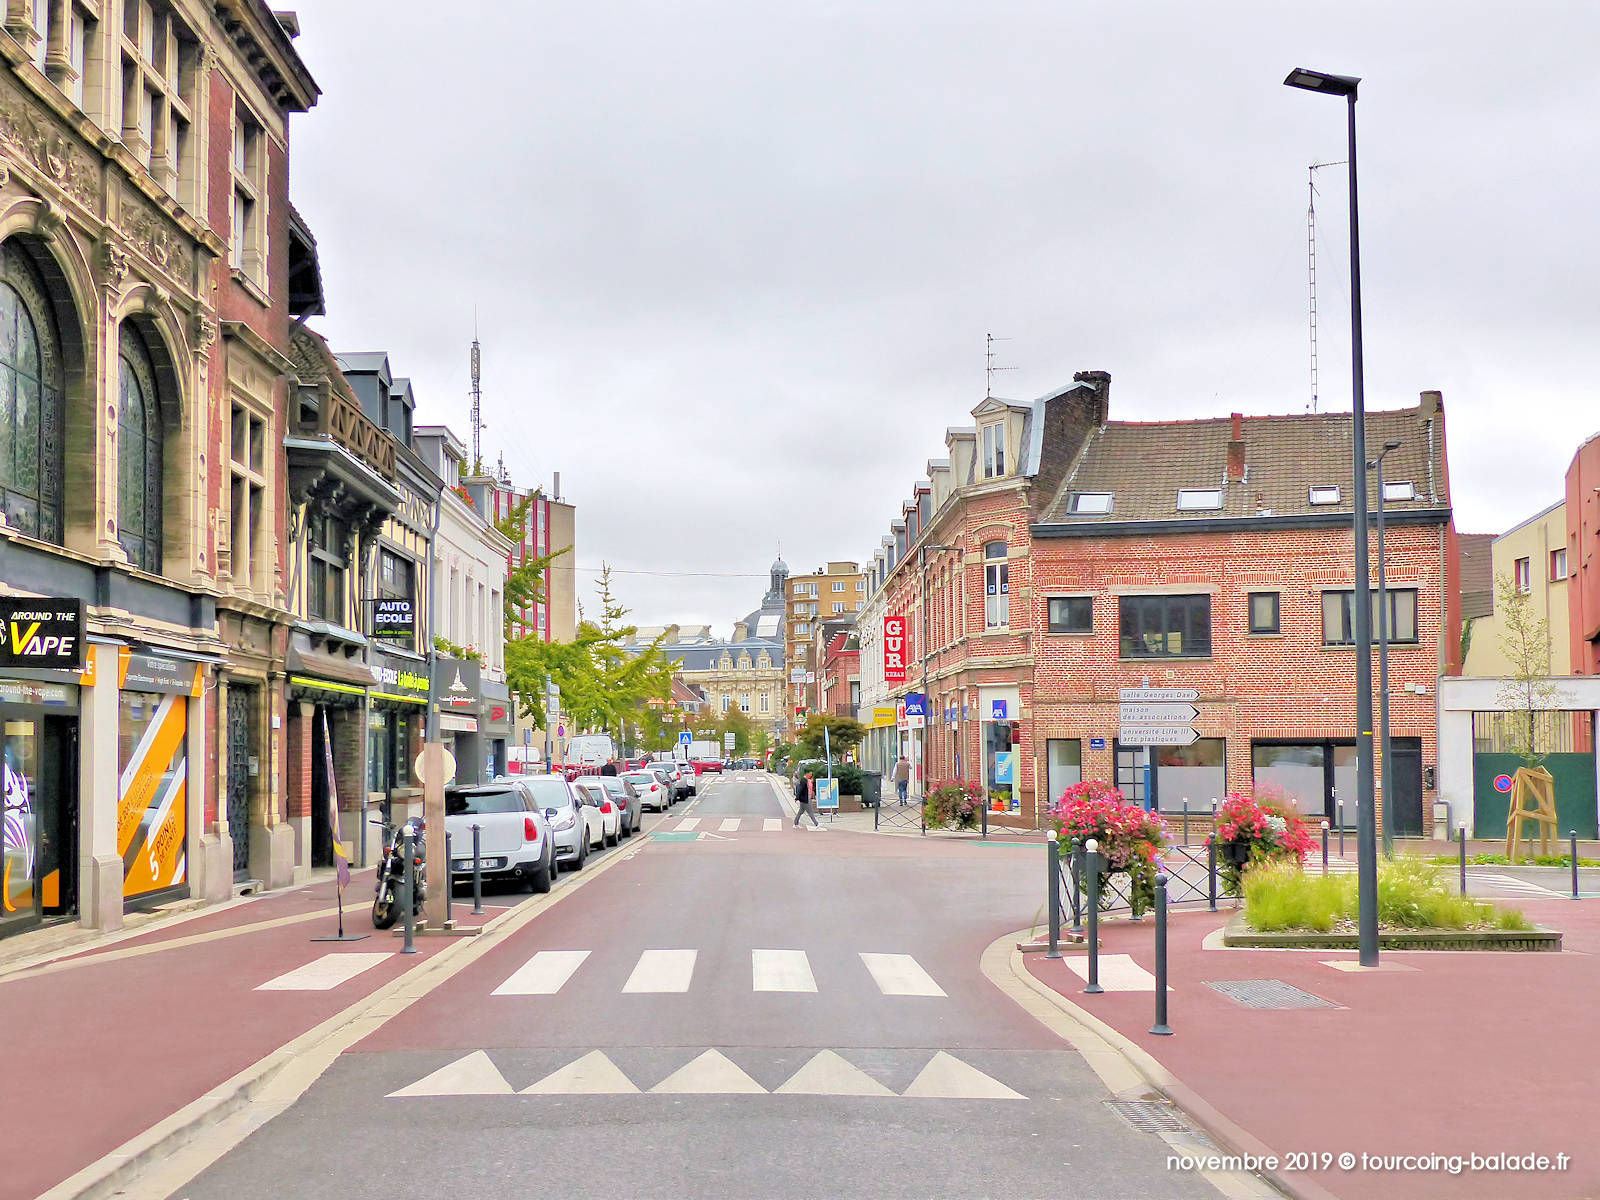 Tourcoing Rue Nationale - Around The Vape, 2019